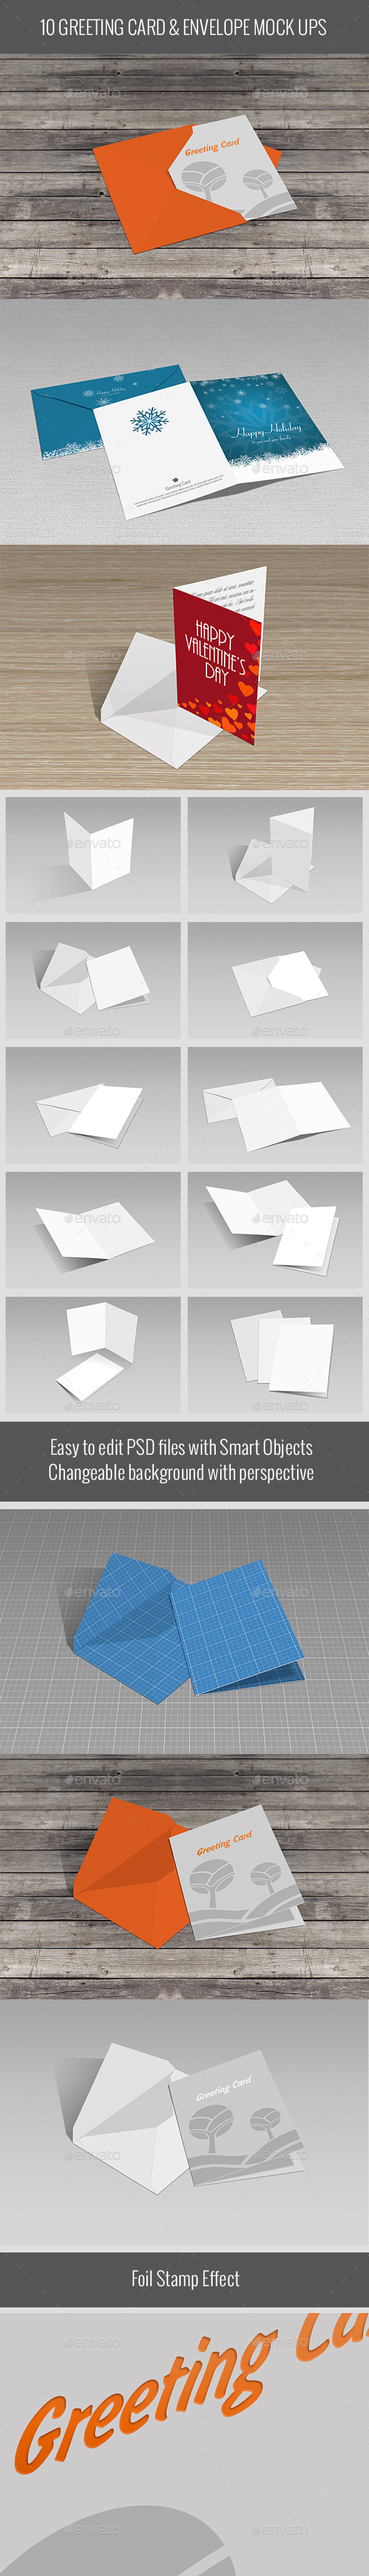 Greeting Card & Envelope Mock Ups - Miscellaneous Print